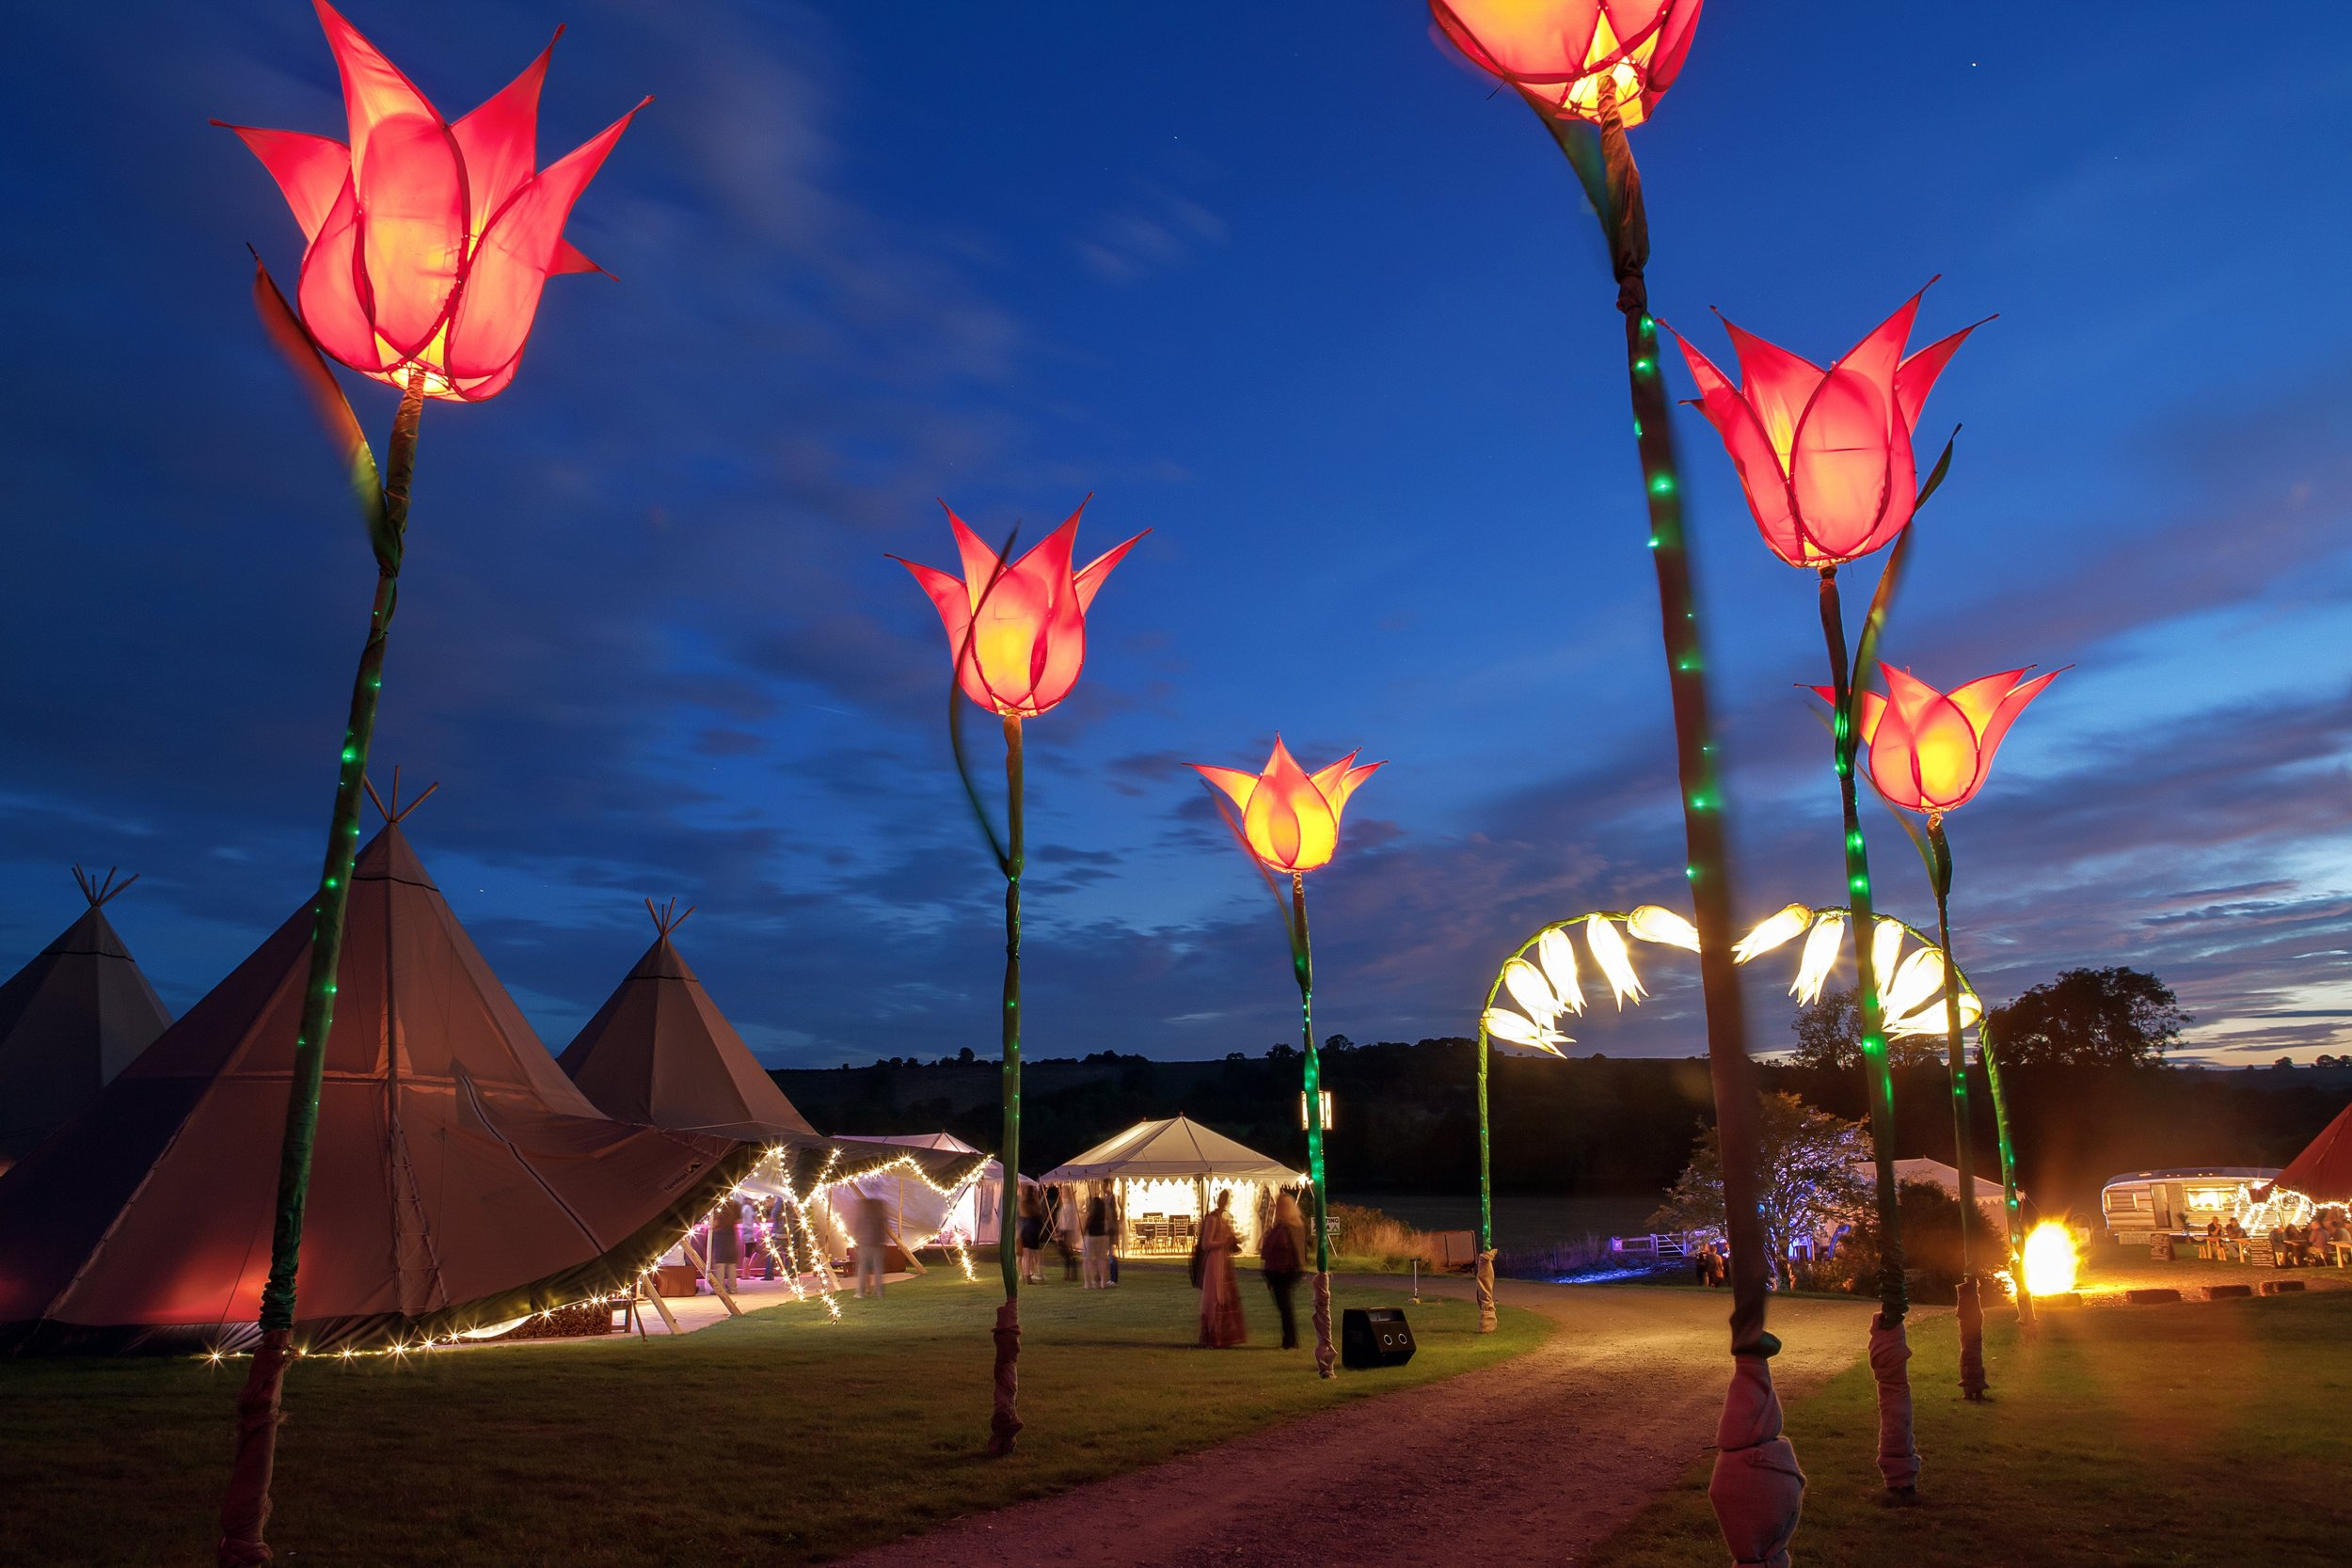 Our expert project management and consultancy comes as part of the package for your wedding, party or corporate event with our giant tipi tents.